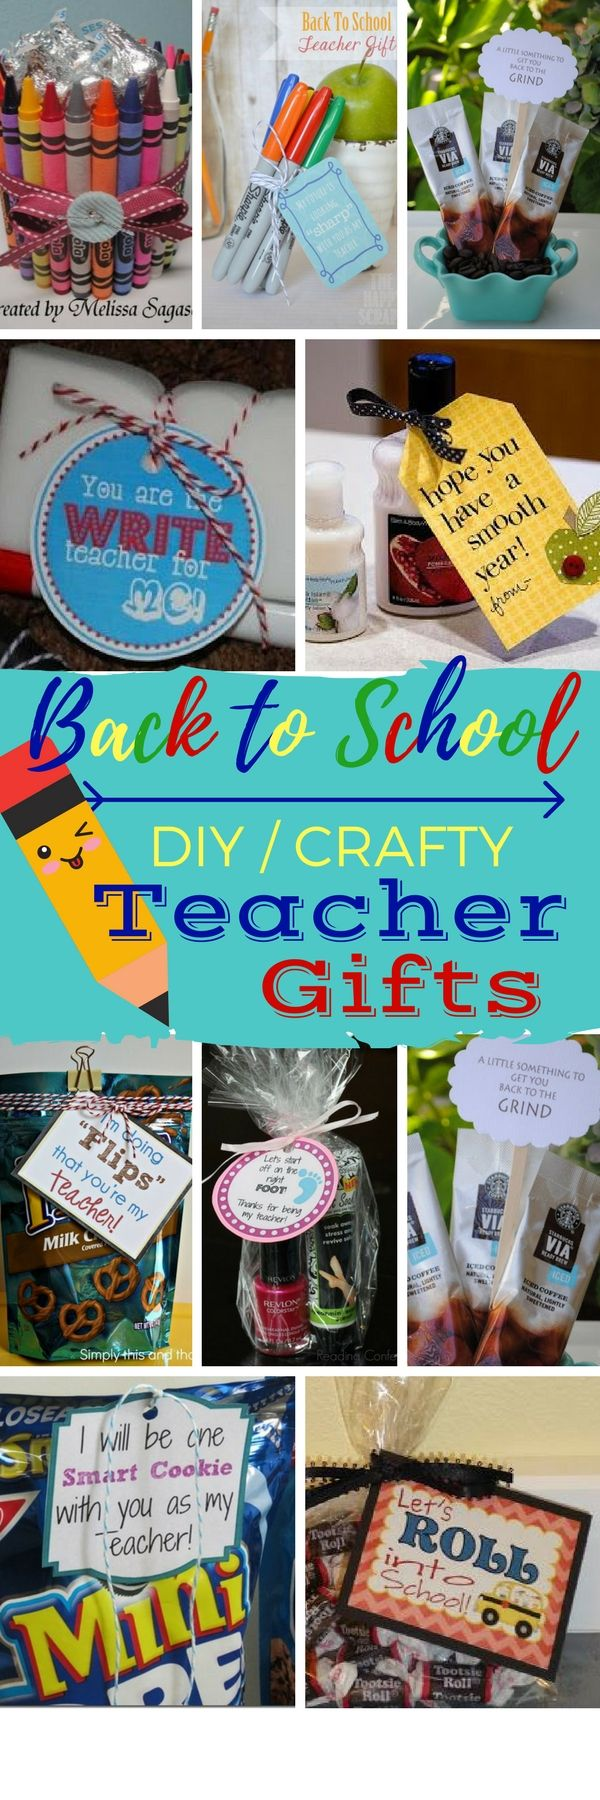 DIY First Day of School Teacher Gifts - Check out these first day of school teacher gifts. Making a fun little gift for back to school will let teachers know that you appreciate all they do for your child!